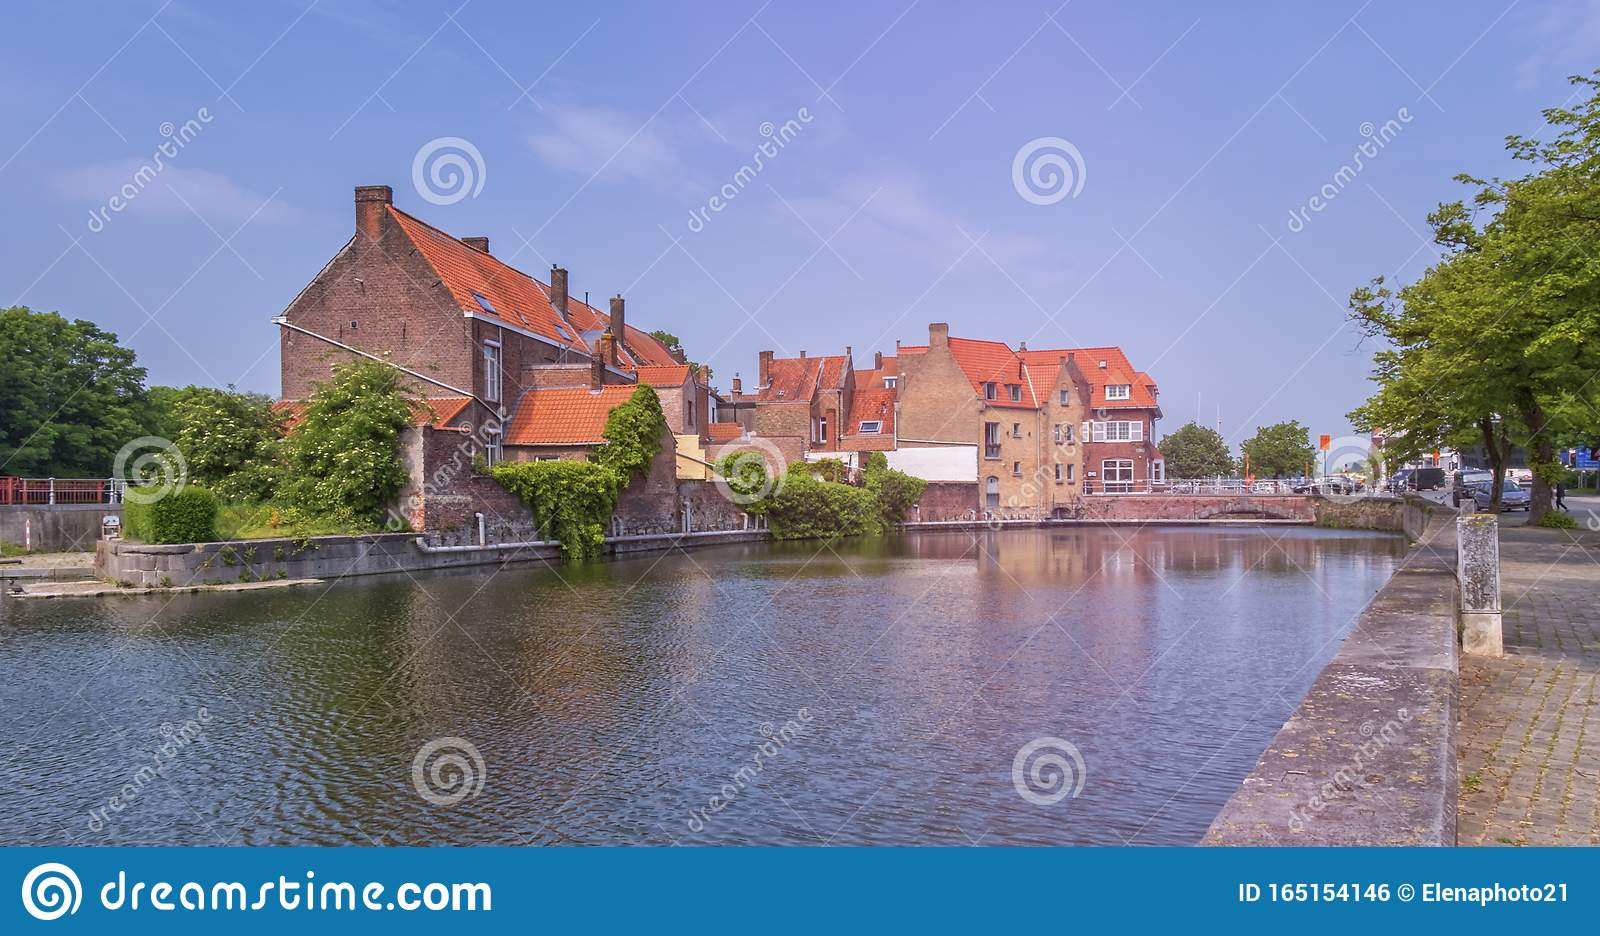 Traditional red brick house and canal in Bruges, Belgium